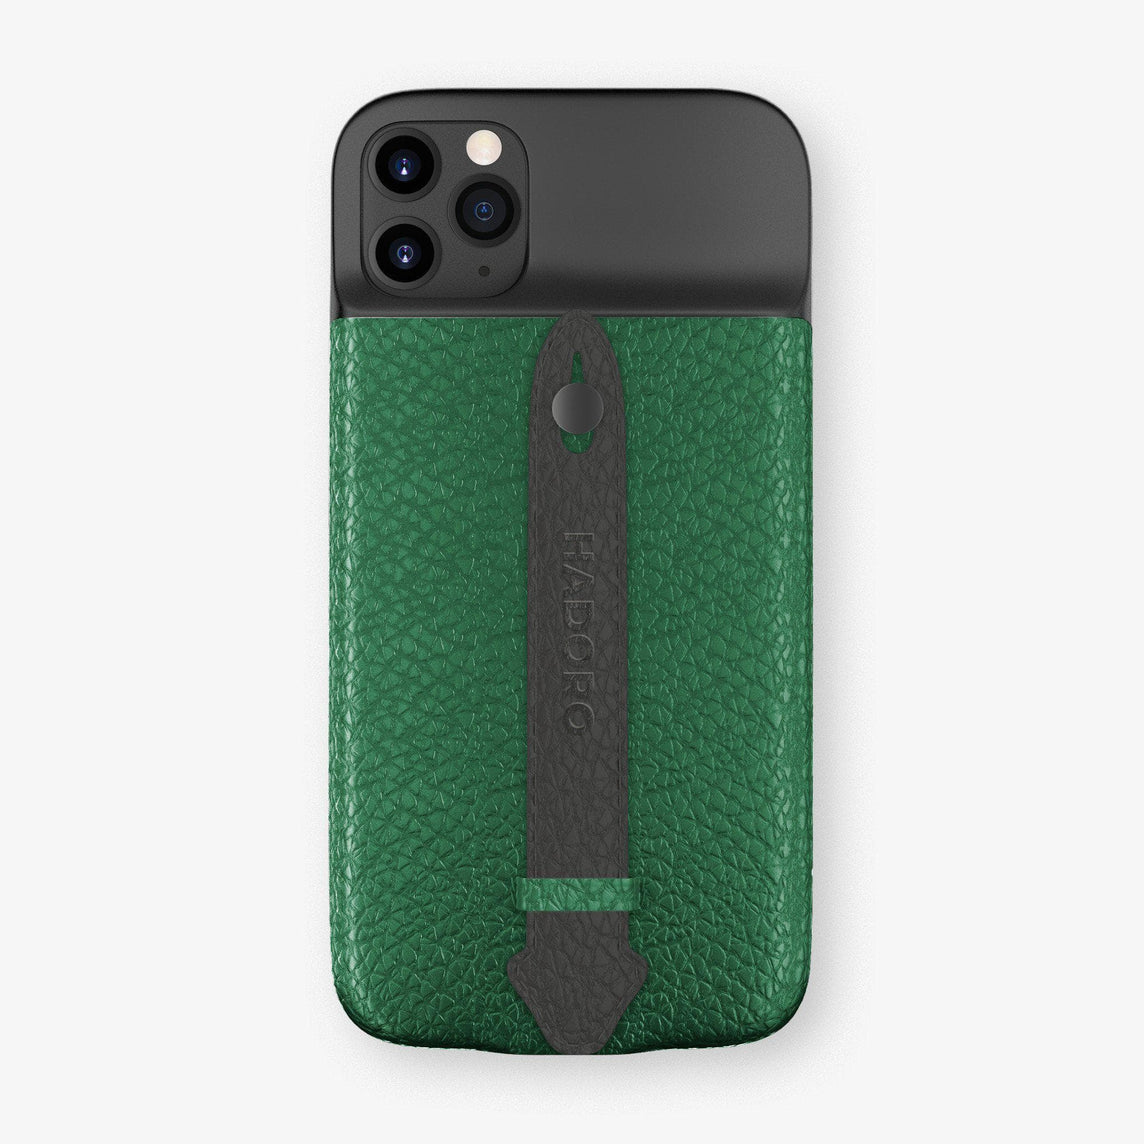 Calfskin Battery Finger Case for iPhone 11 Pro Max | Green/Anthracite - Black without-personalization